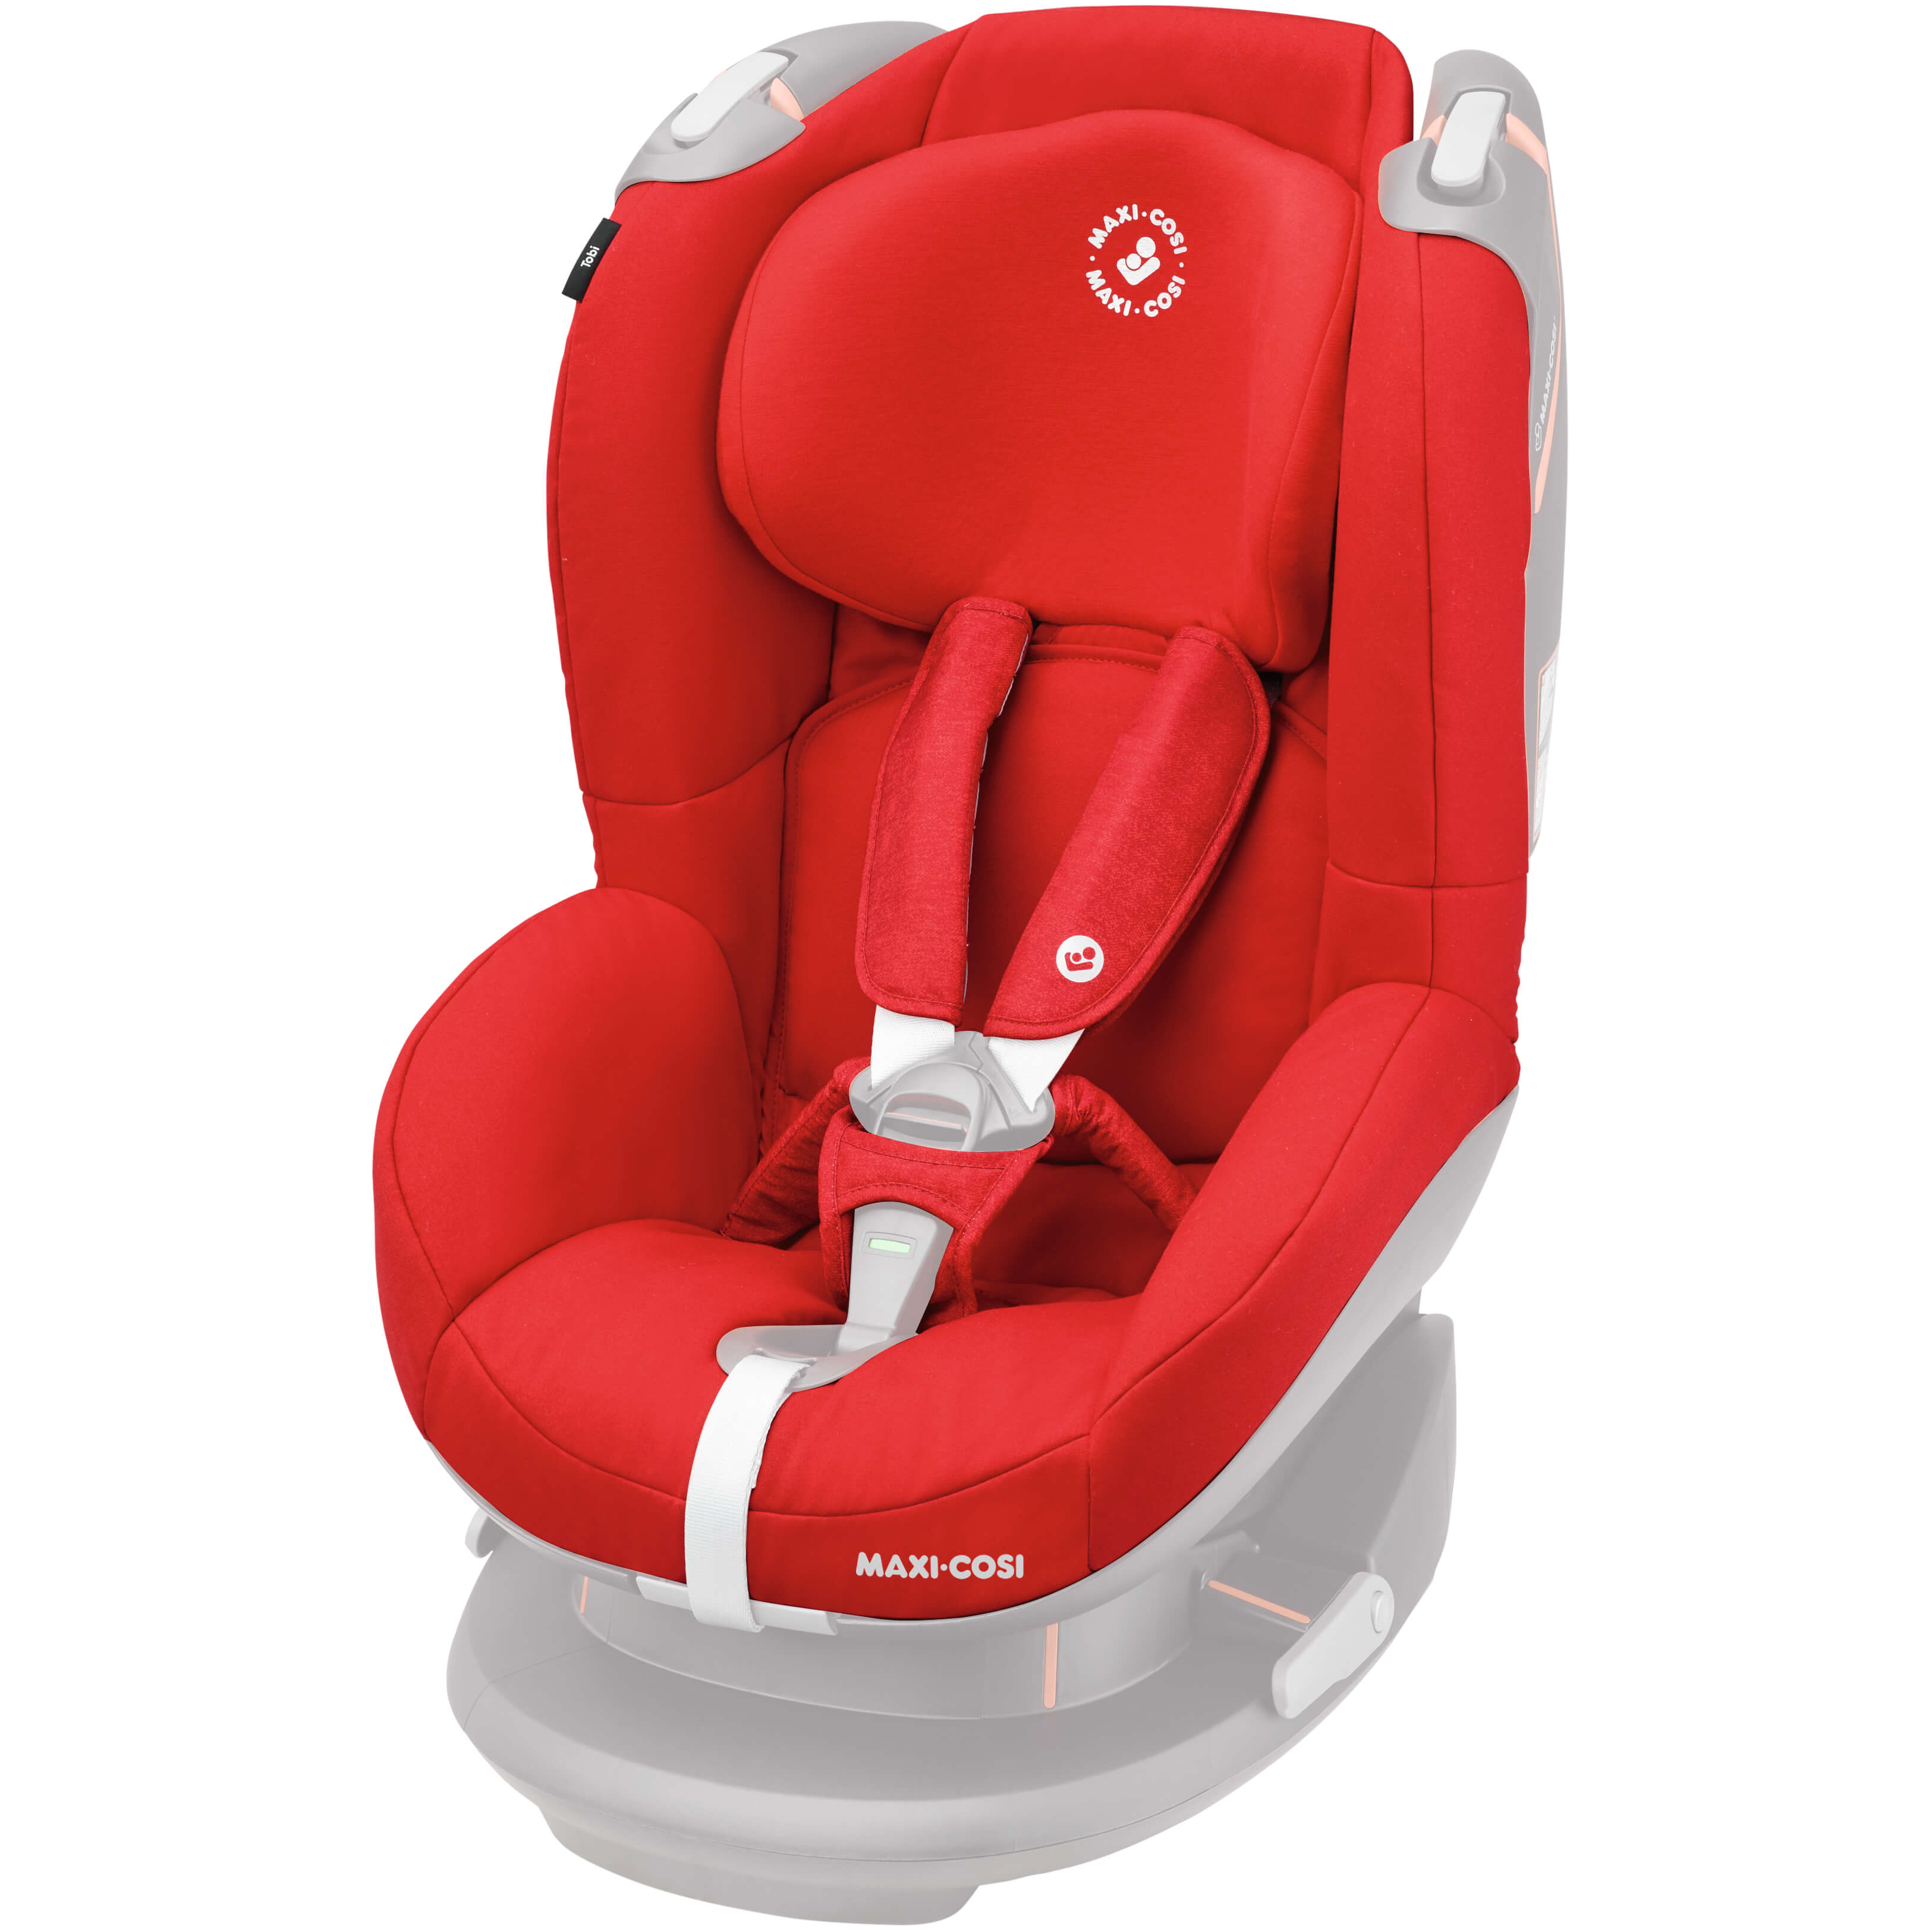 Maxi Cosi Seat Cover Set For The Tobi Child Seat Nomad Red